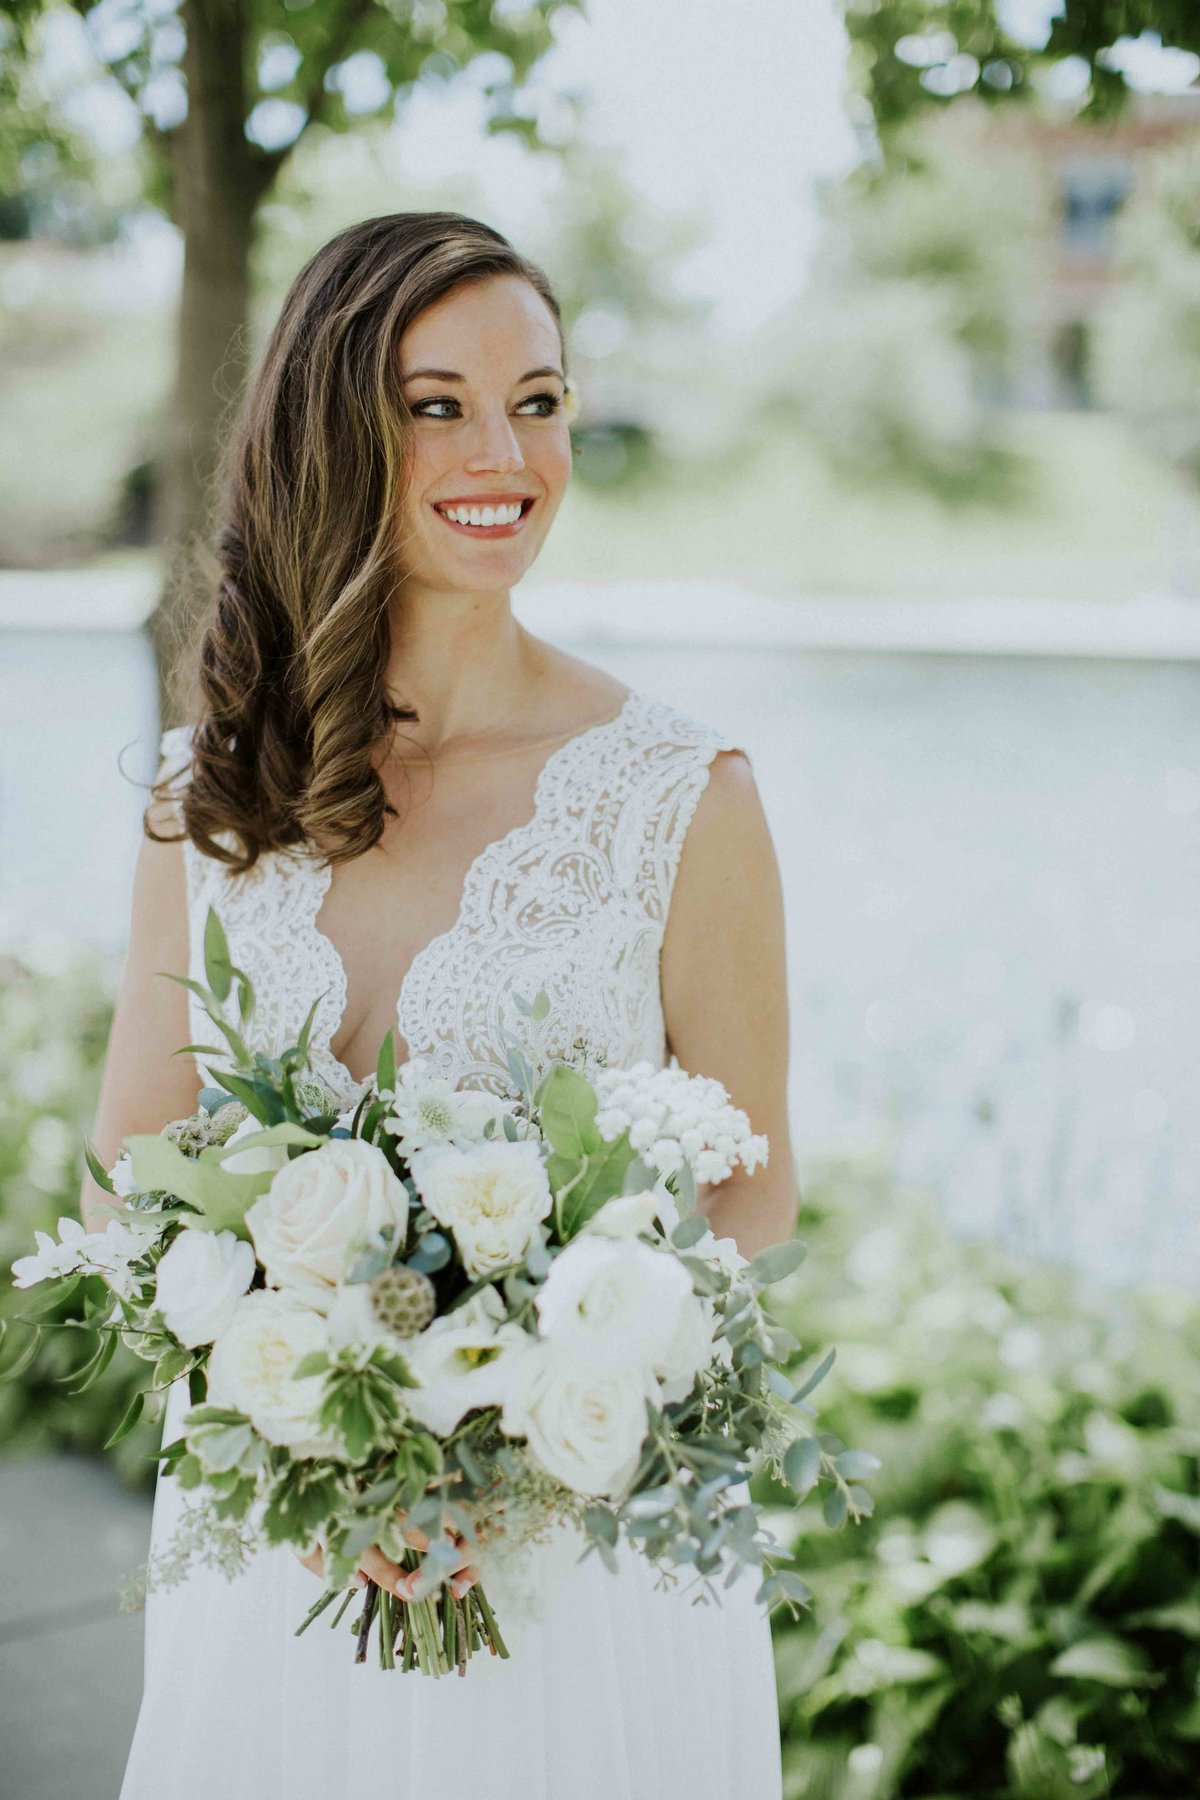 Bride smiles while holding bouquet in Indianapolis wedding